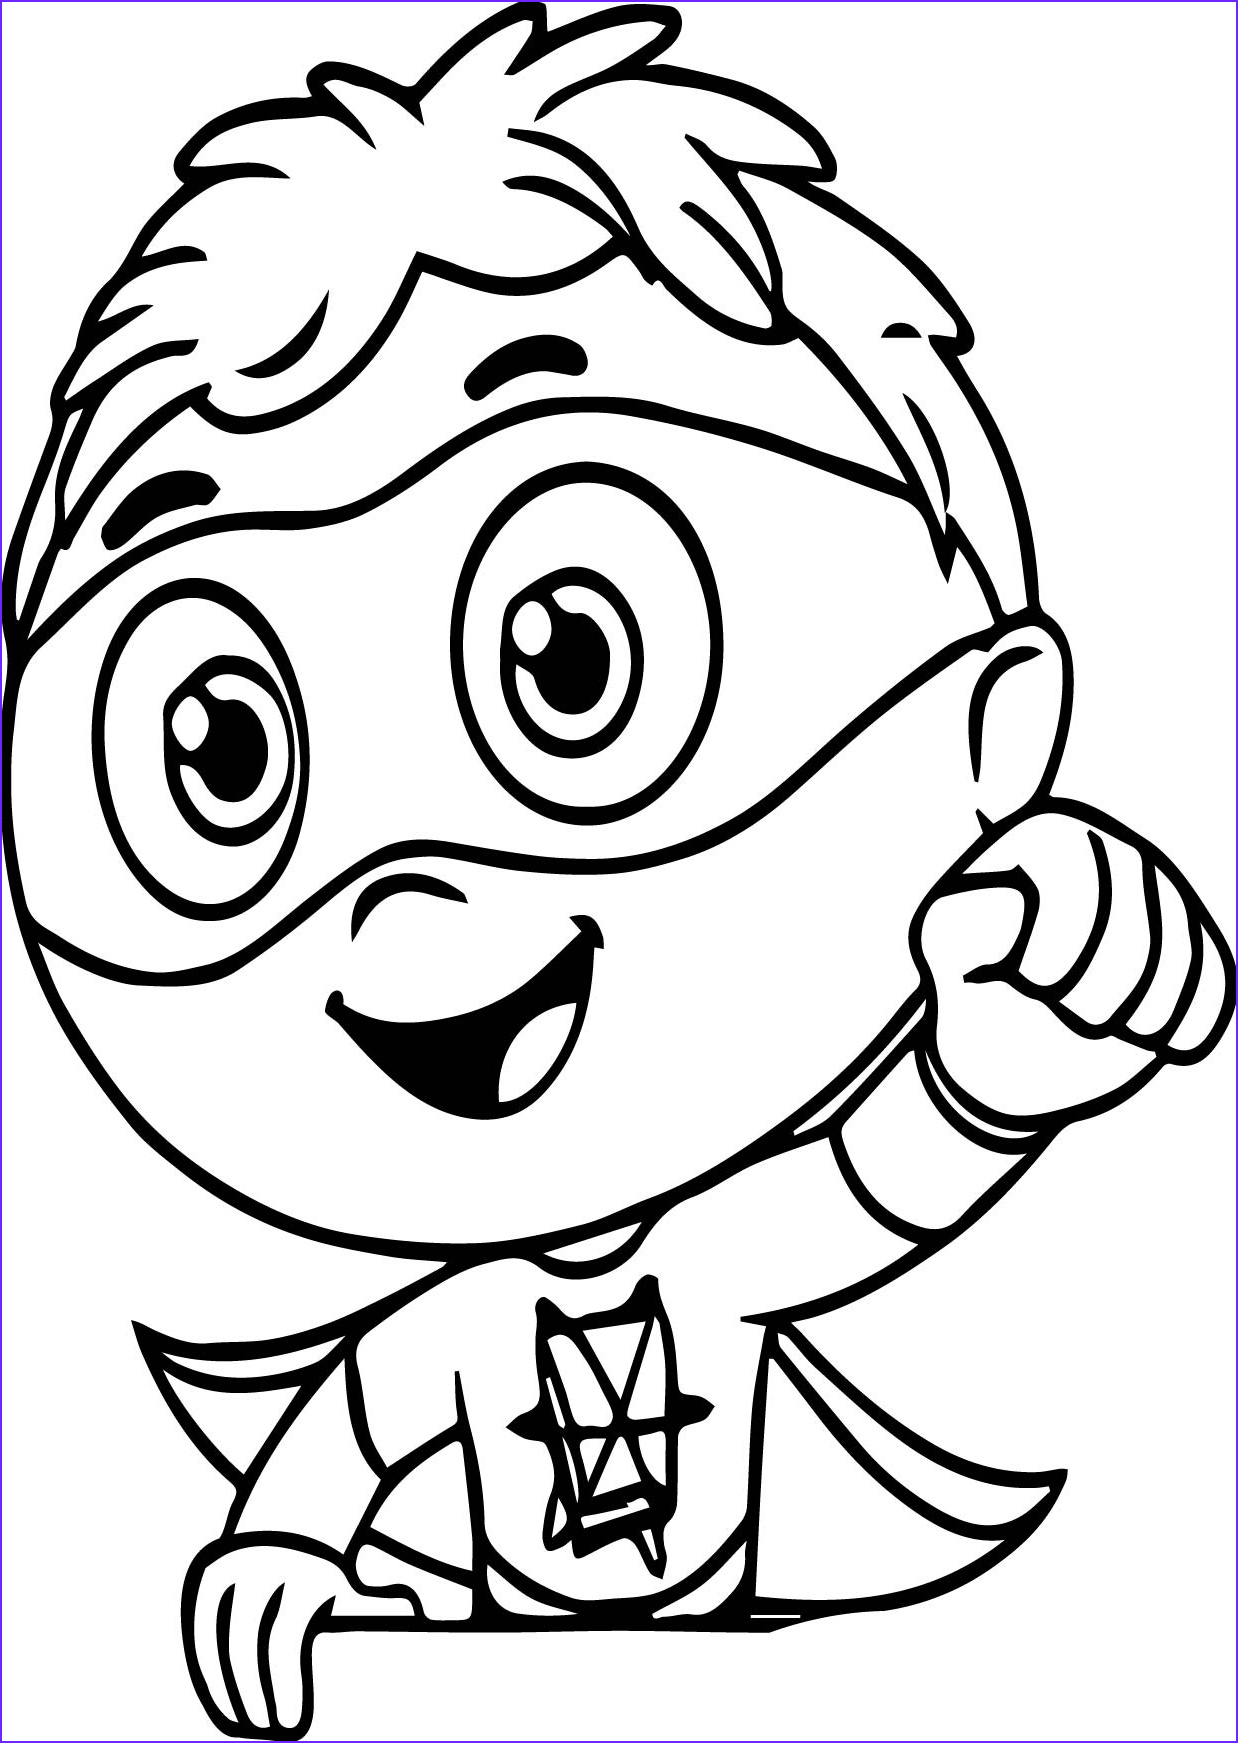 Printables Coloring Pages New Stock Super why Coloring Pages Best Coloring Pages for Kids